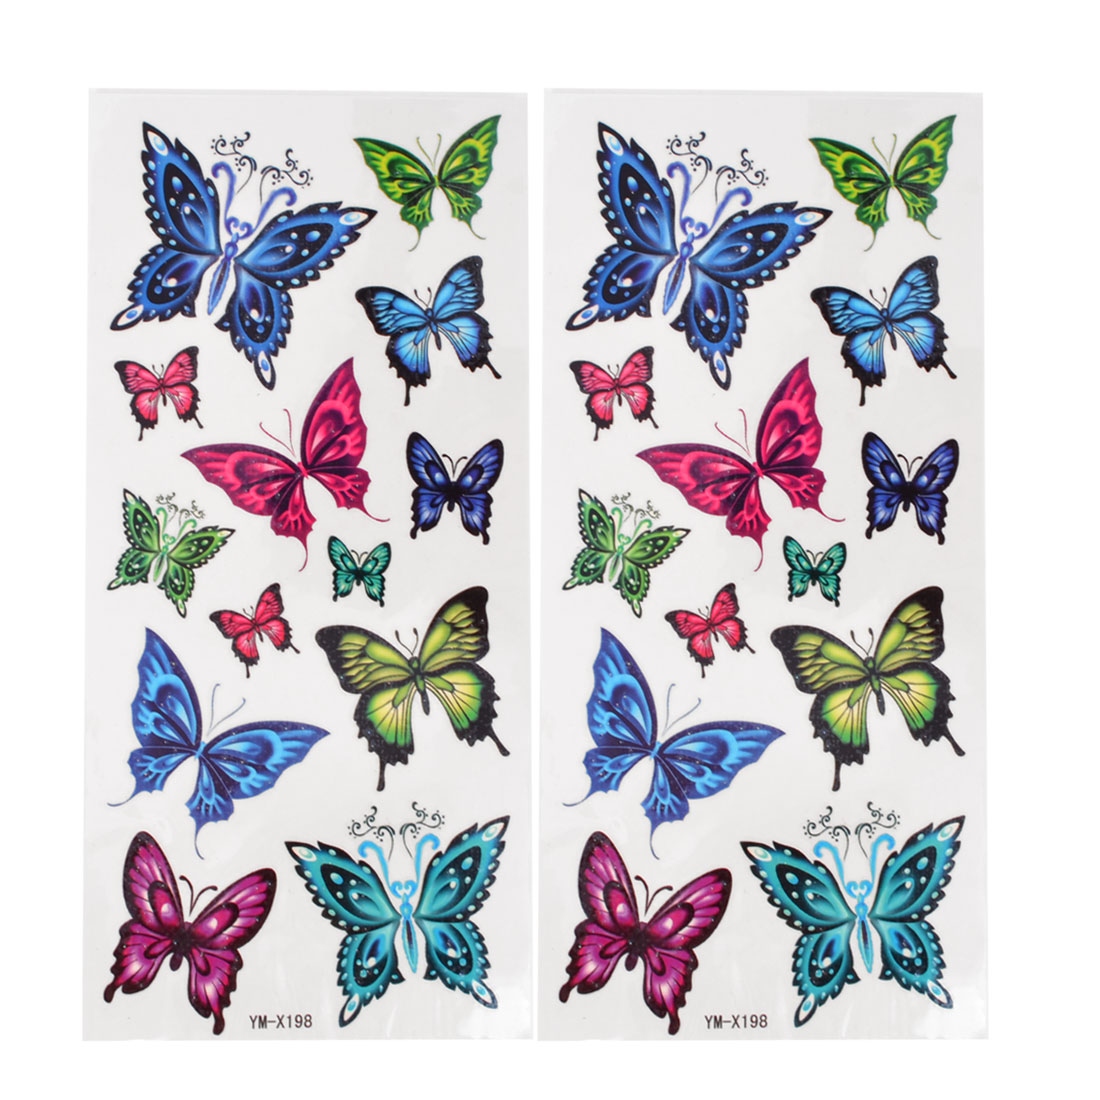 Butterfly Pattern Transfer Tribal Tattoos Sticker Skin Paster Tattooing Decals Colorful 2 Pcs